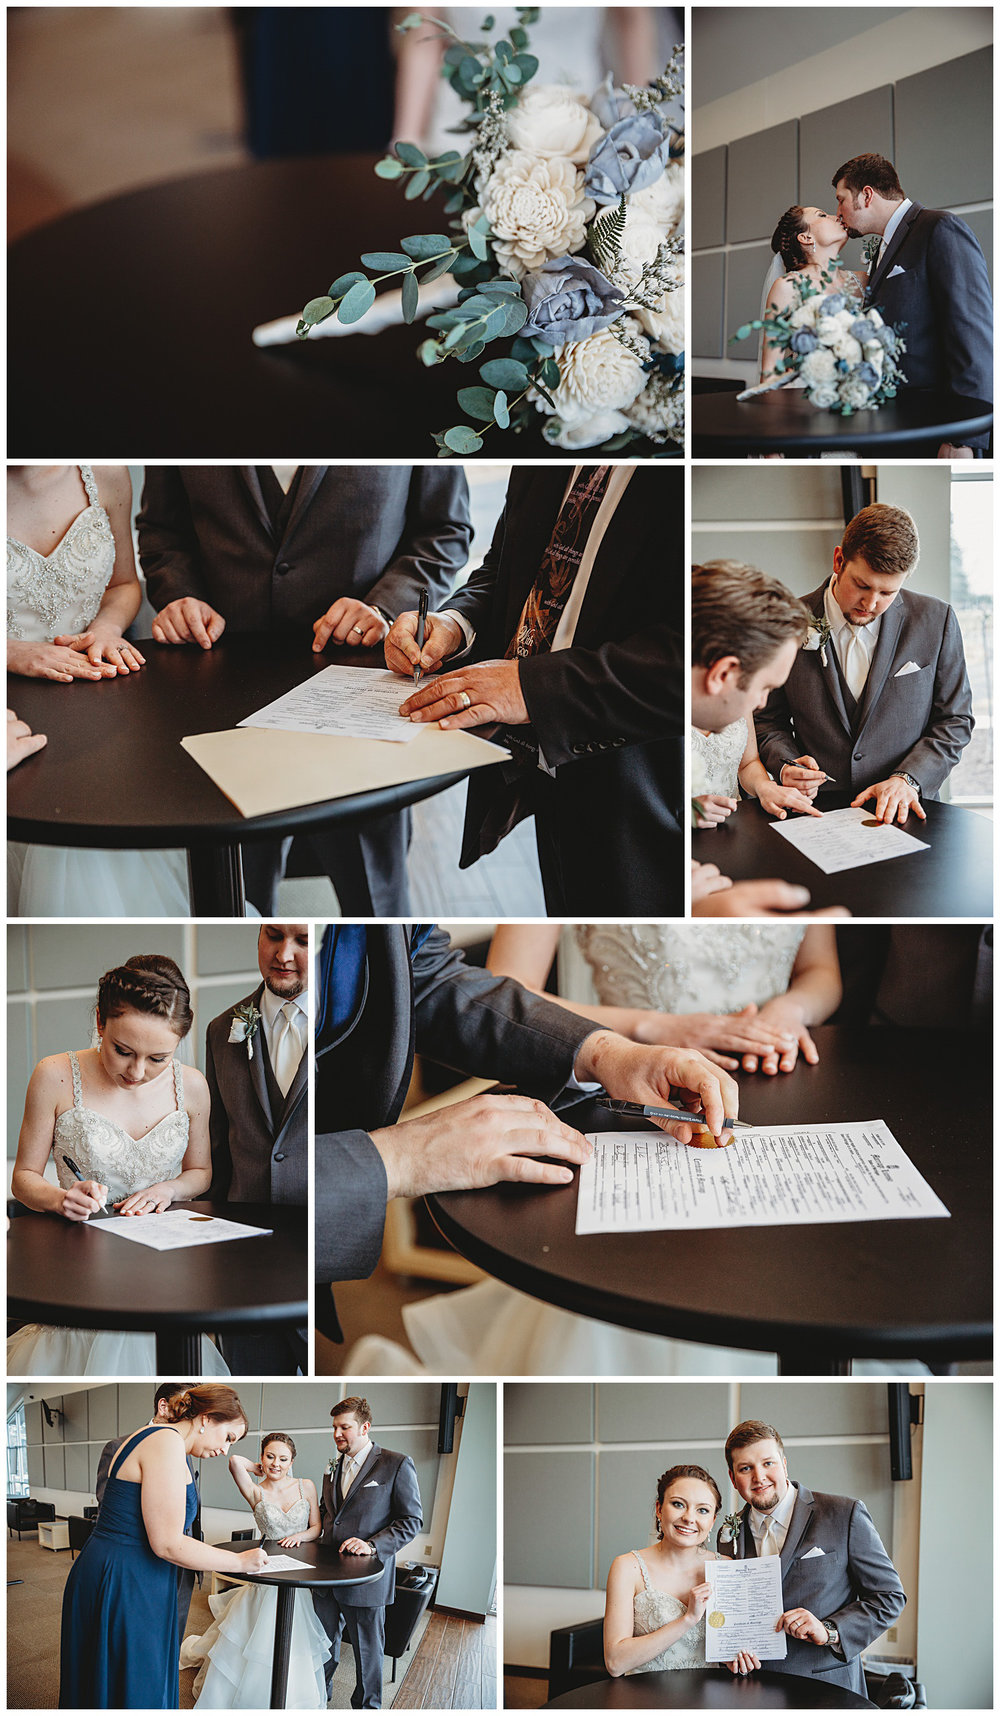 Rachel and Ben Faith Bible Church Livonia Michigan Helenic Culteral Center Westland Michigan Wedding-36.jpg